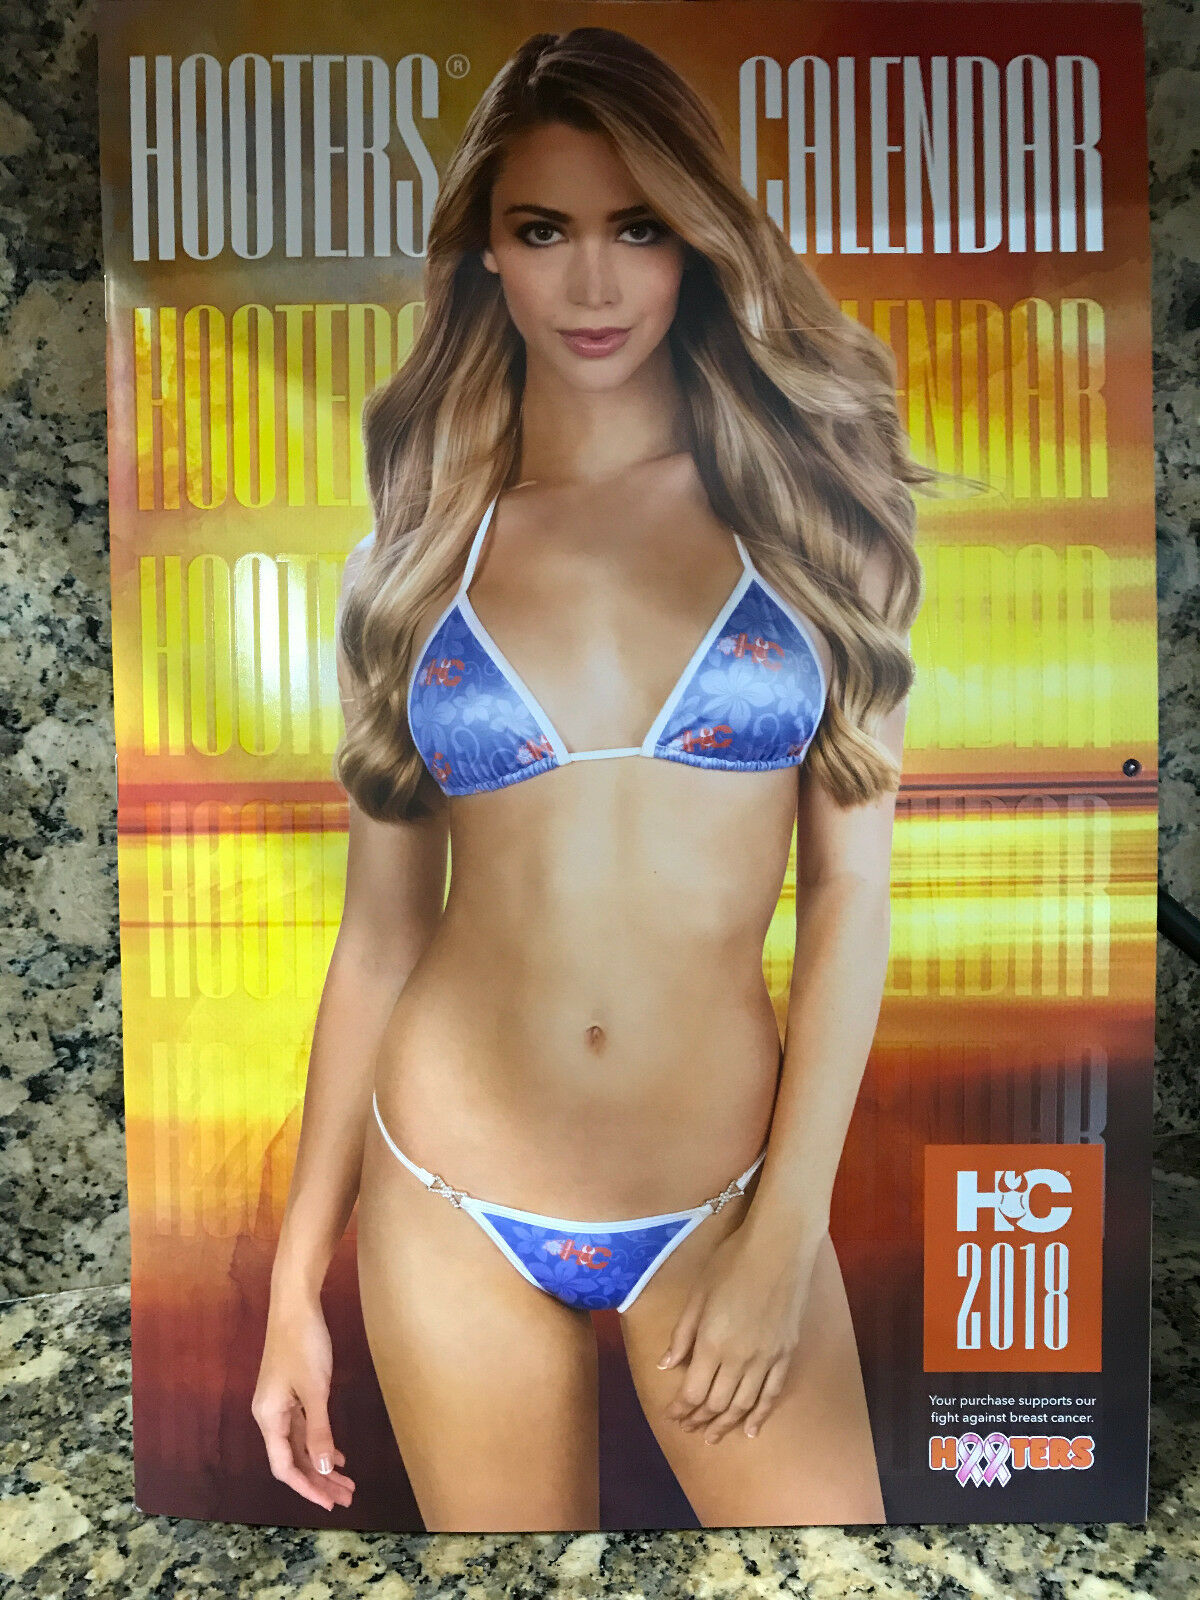 2018 HOOTERS CALENDAR SHIP WORLDWIDE FREE POSTER & COUPONS